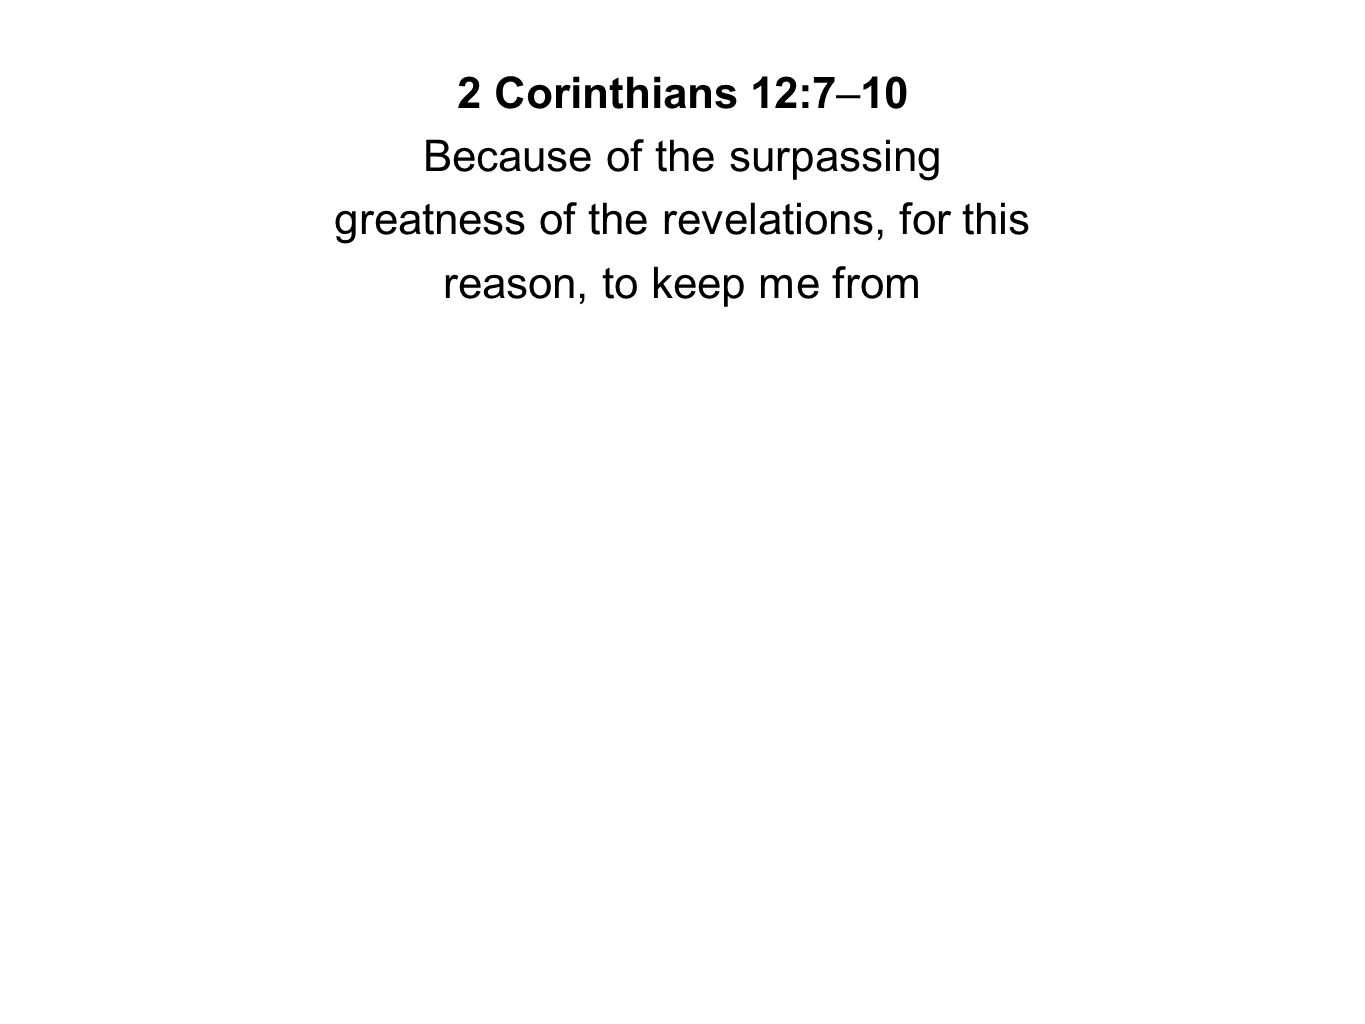 2 Corinthians 12:7–10 Because of the surpassing greatness of the revelations, for this reason, to keep me from